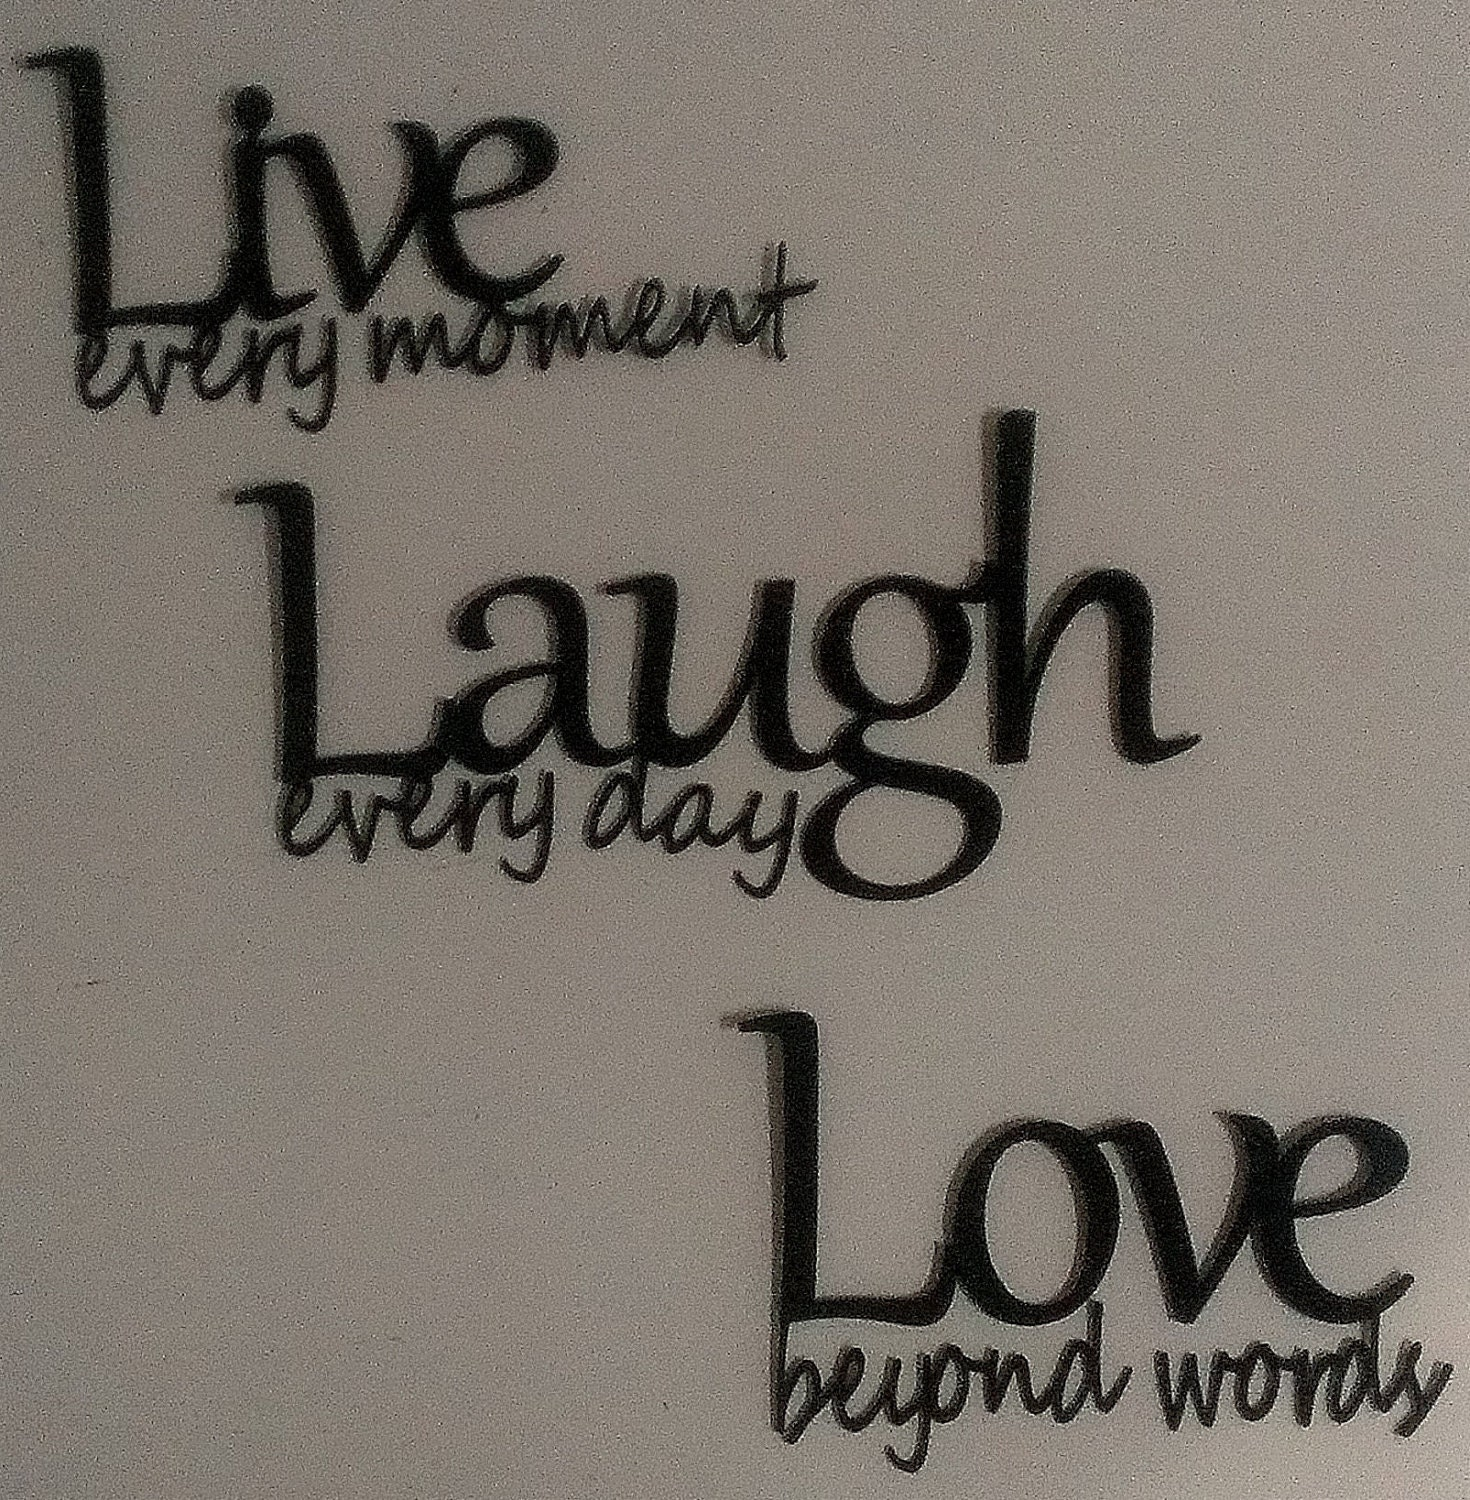 Beyond Words Customizable Wall Decor Kohls : Live laugh love metal wall art black by steeldesigns on etsy